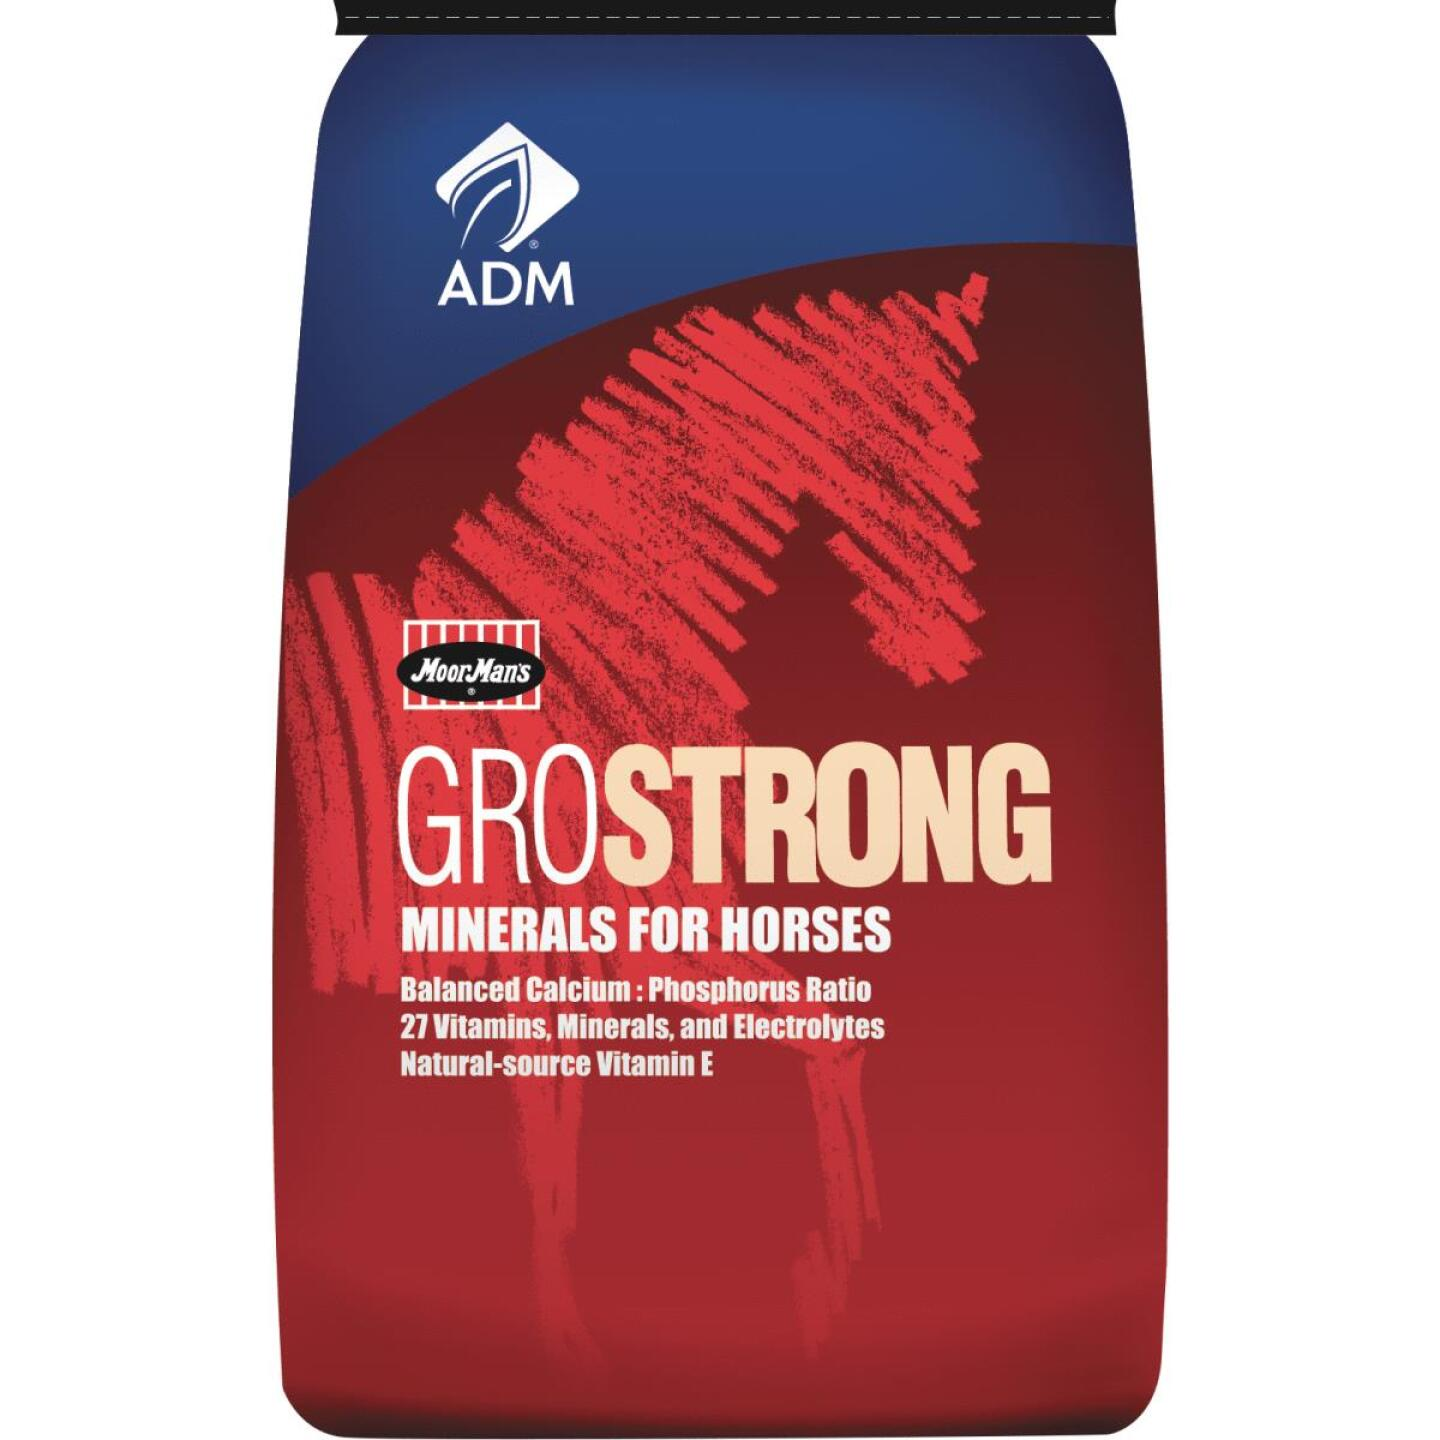 ADM GroStrong 25 Lb. Mineral Horse Feed Supplement Image 1